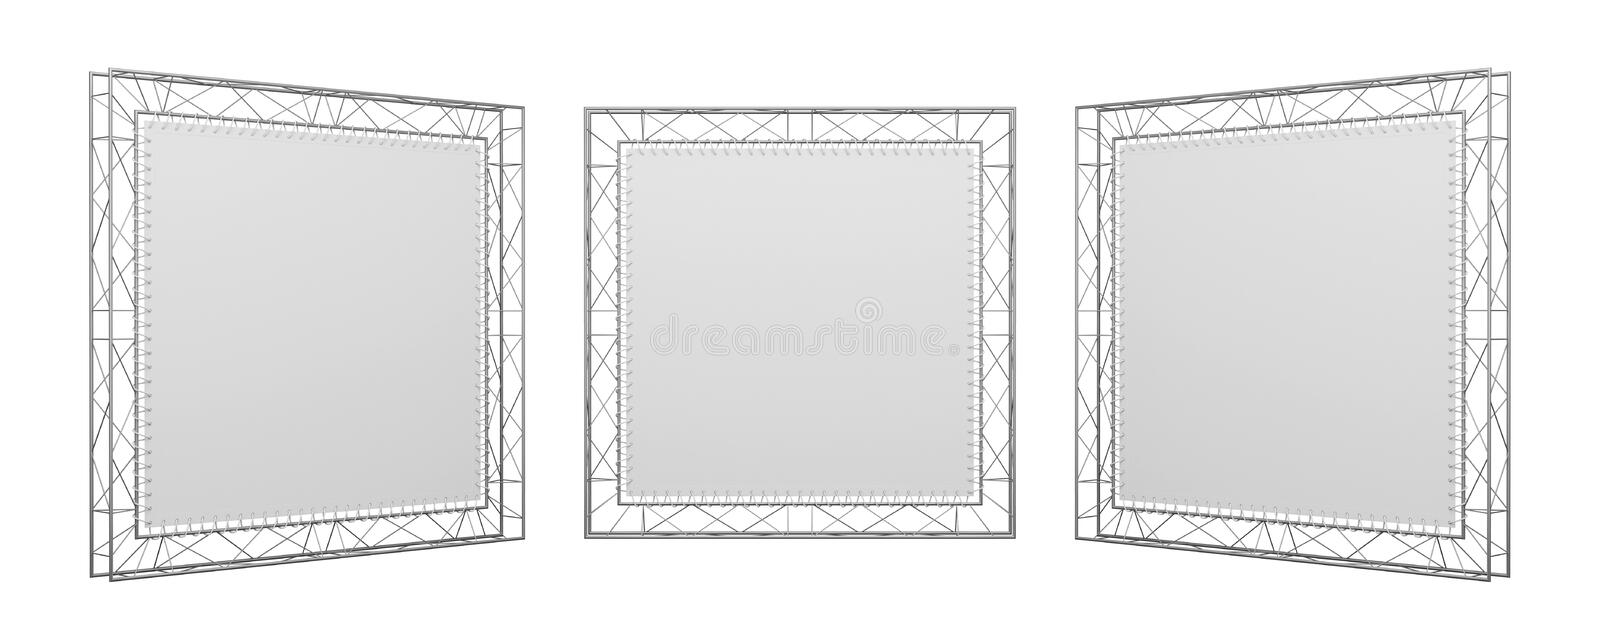 Download Three exhibition stands stock illustration. Image of banner - 25063561